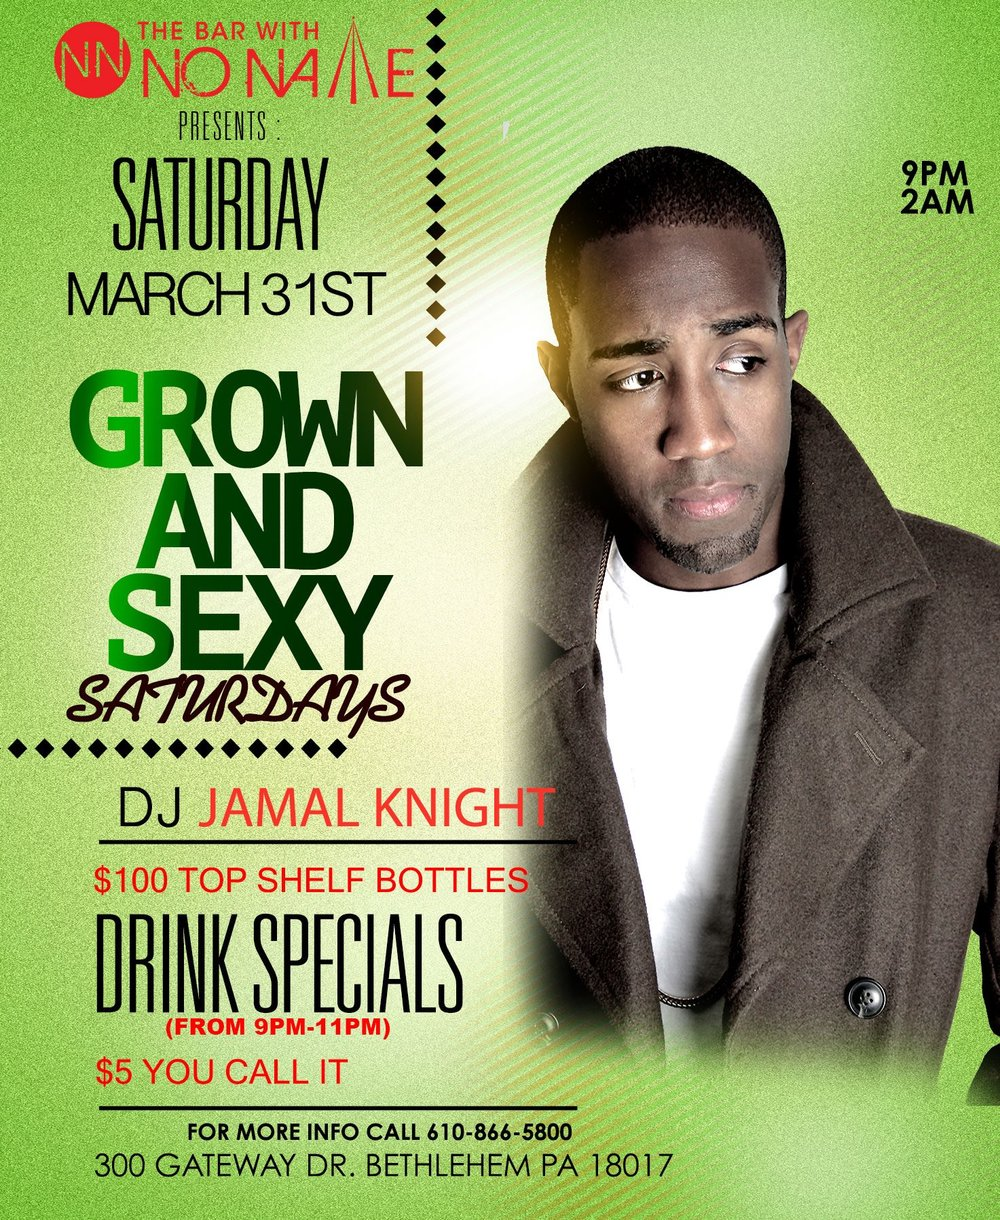 Grown and Sexy Saturdays with DJ Jamal Knight